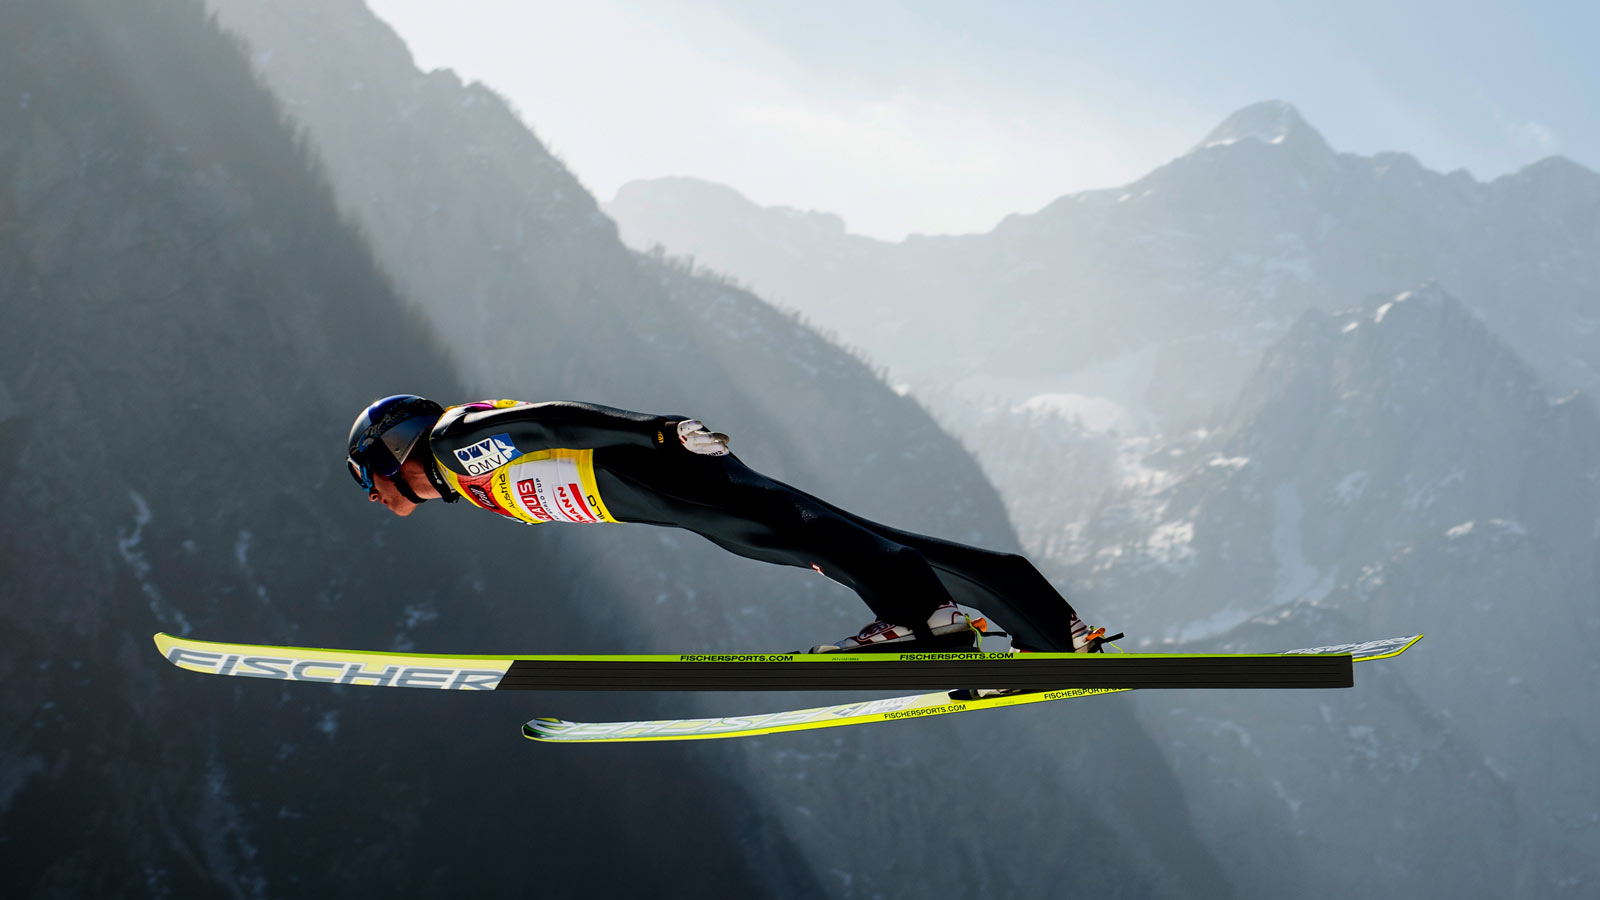 ski flying vs ski jumping